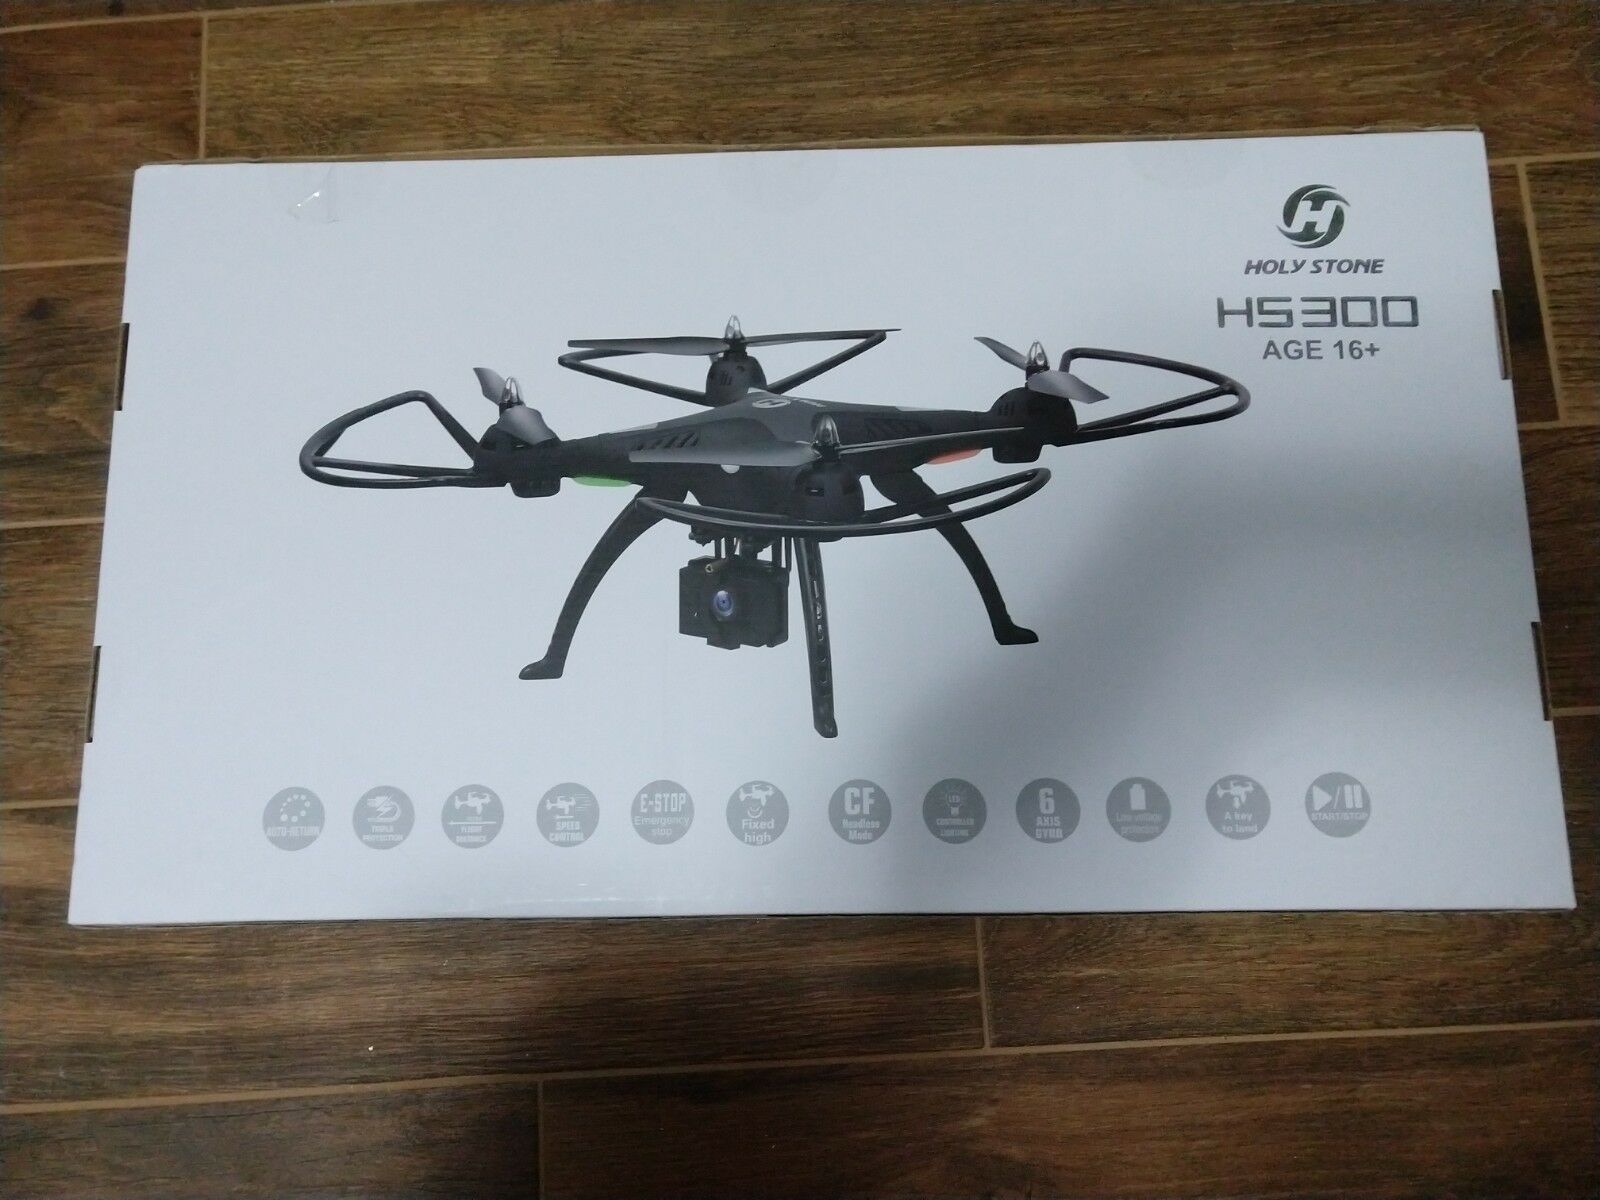 1080 camera Drone , Holy Stone HS300 Quad copter with 120 wide angle HD camera